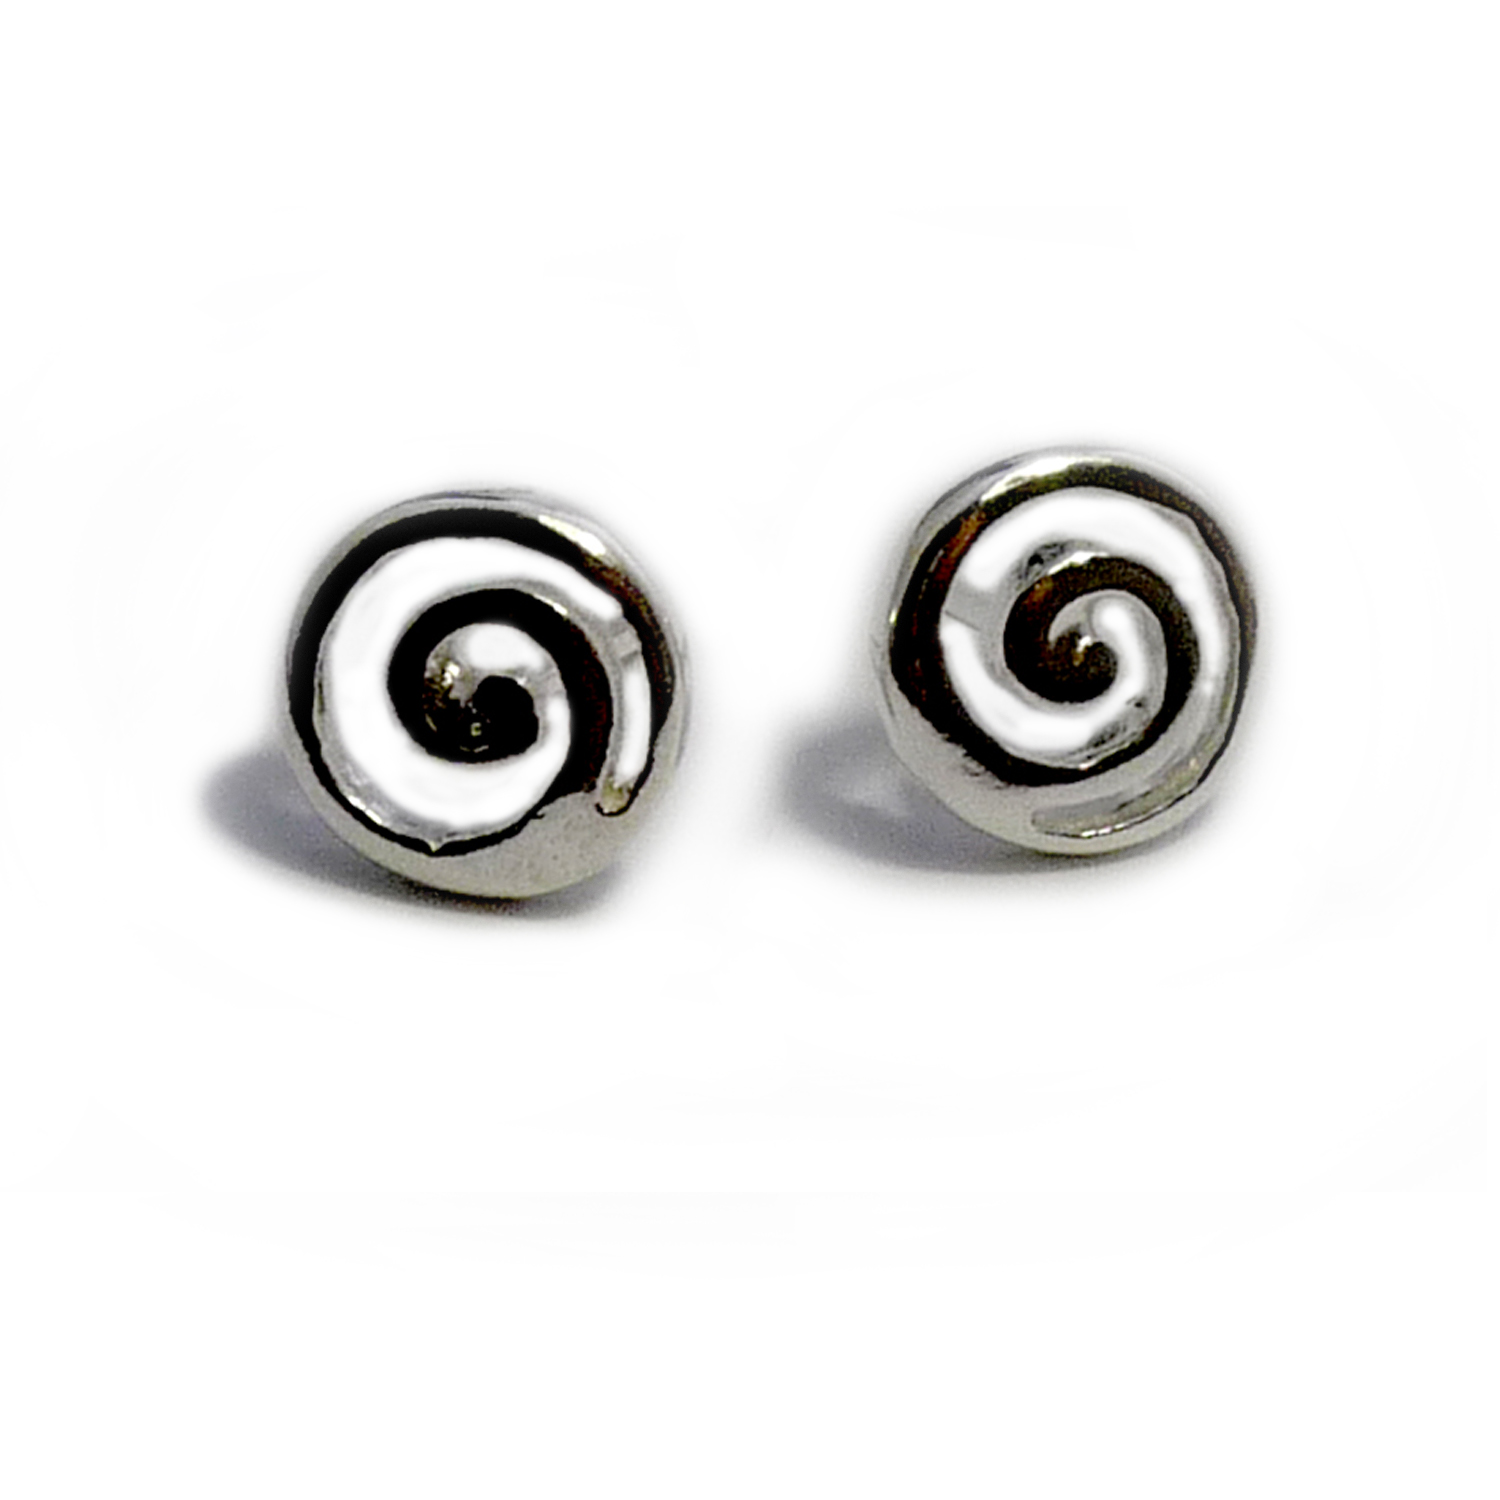 Sterling Silver Greek Spira Stud Earrings, Diameter 10mm Brought back from the of Greek ancient jewelry era, designed & inspired by the Ancient Greek mythological Labyrinth  built by the legendary artificer Daedalus, makes this timeless pair of push back stud earrings a staple of a 3000 year old history.